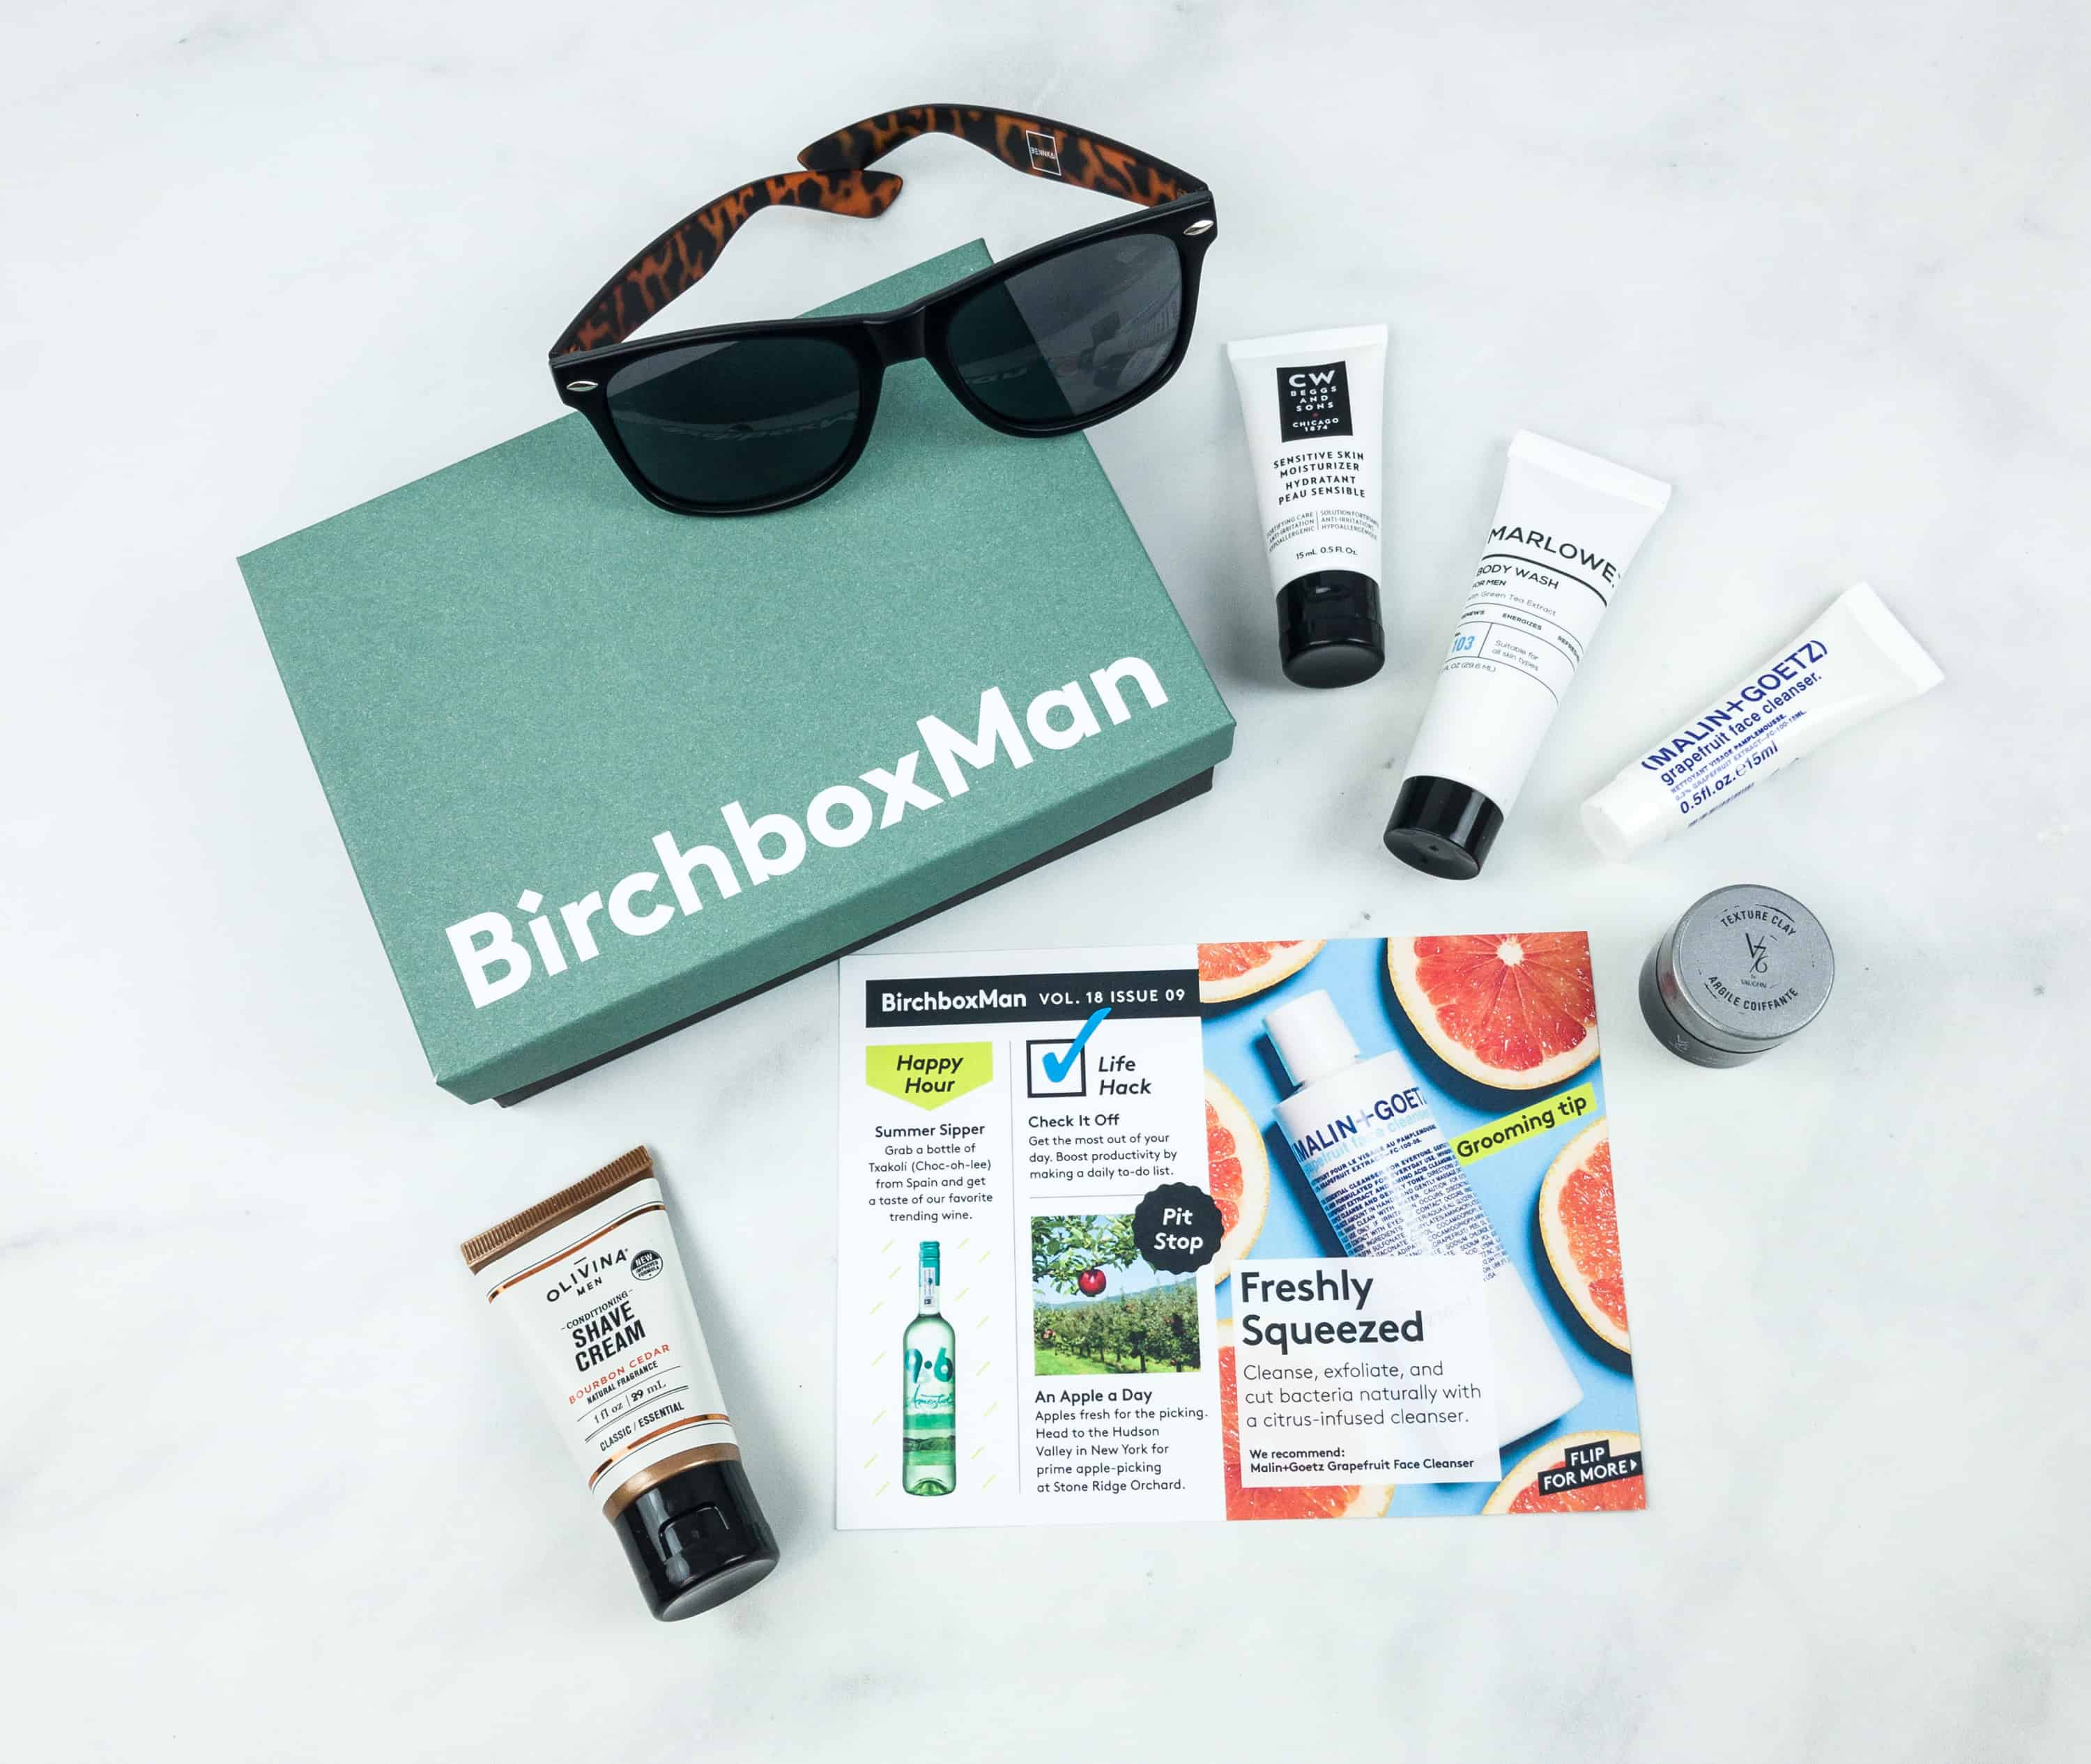 Birchbox Man September 2018 Subscription Box Review & Coupon